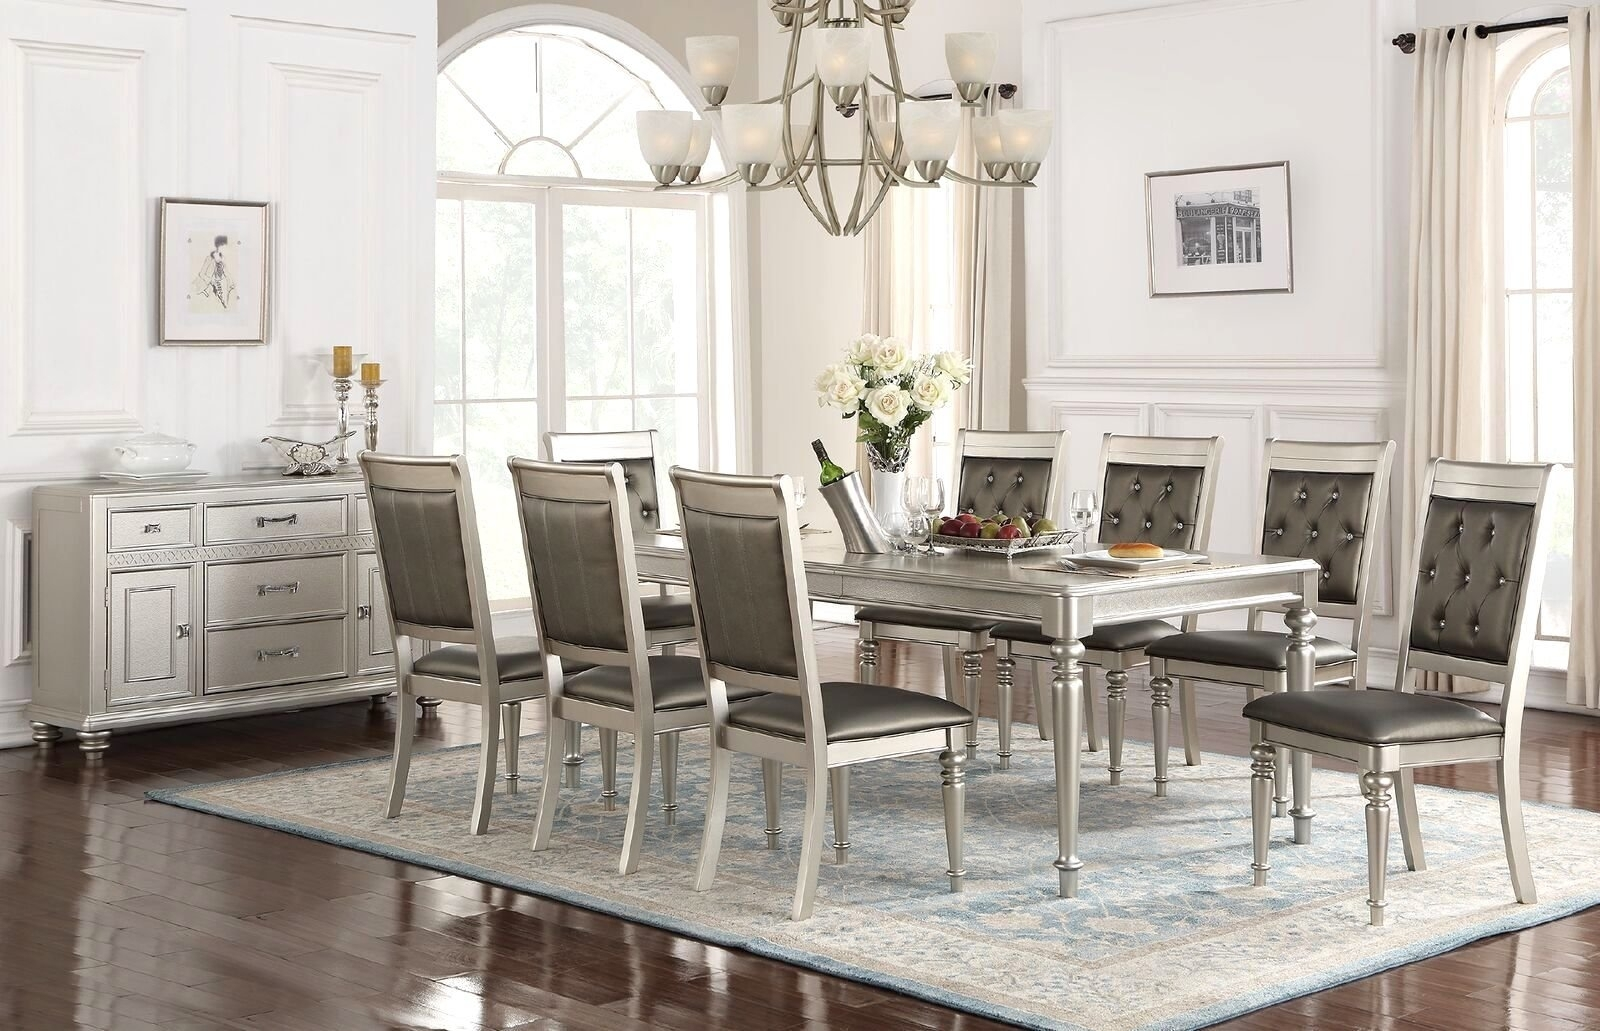 9 Piece Dining Sets You'll Love | Wayfair Within 2017 Caira 9 Piece Extension Dining Sets With Diamond Back Chairs (Photo 6 of 20)